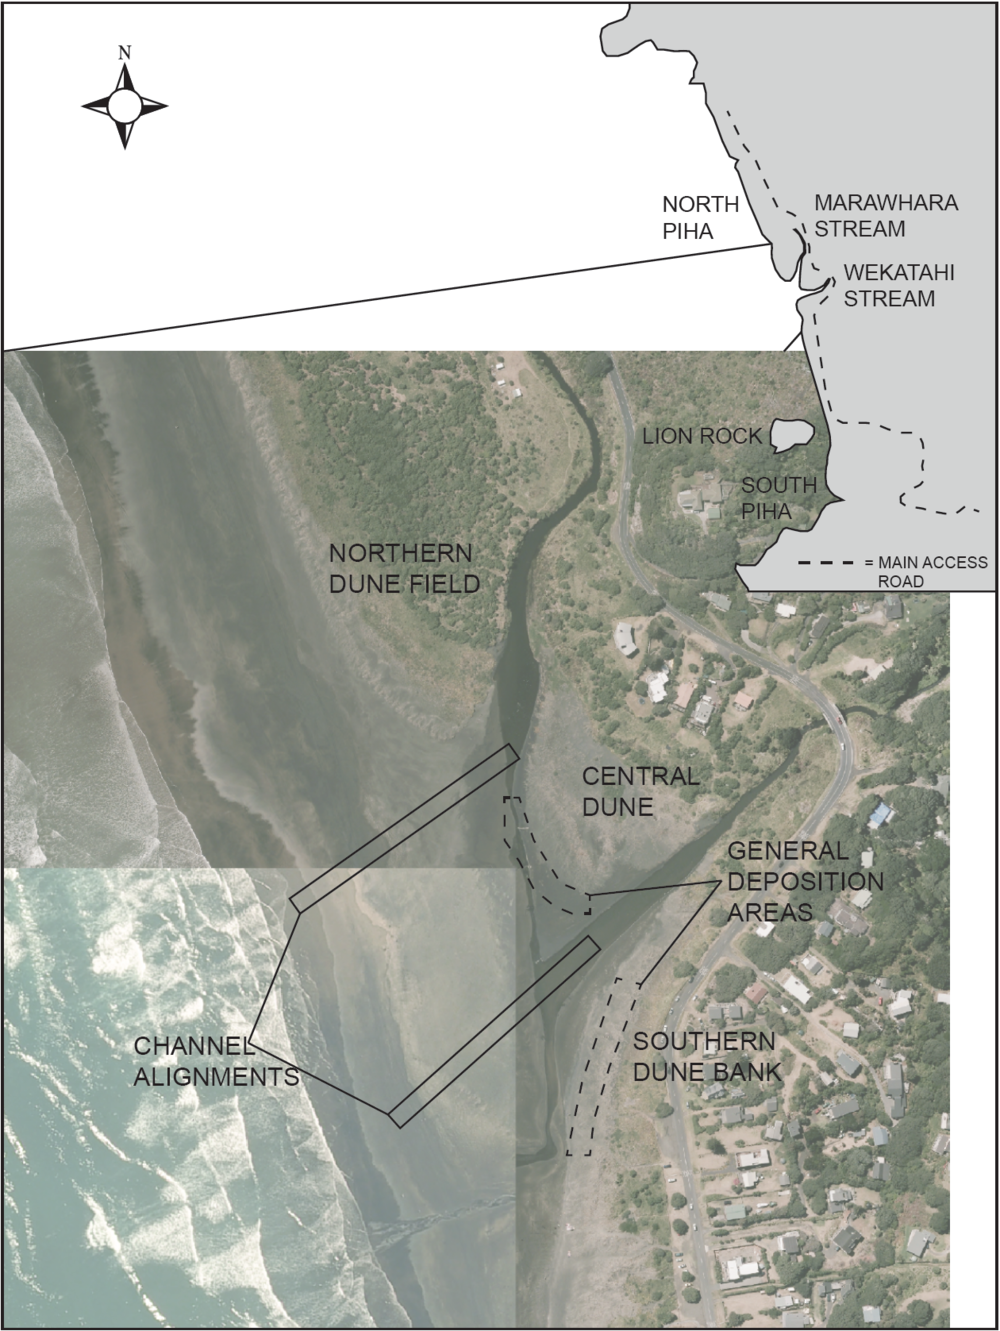 Figure 3: A map of Piha Beach showing the location of the Marawhara and Wekatahi Streams and general works plan.